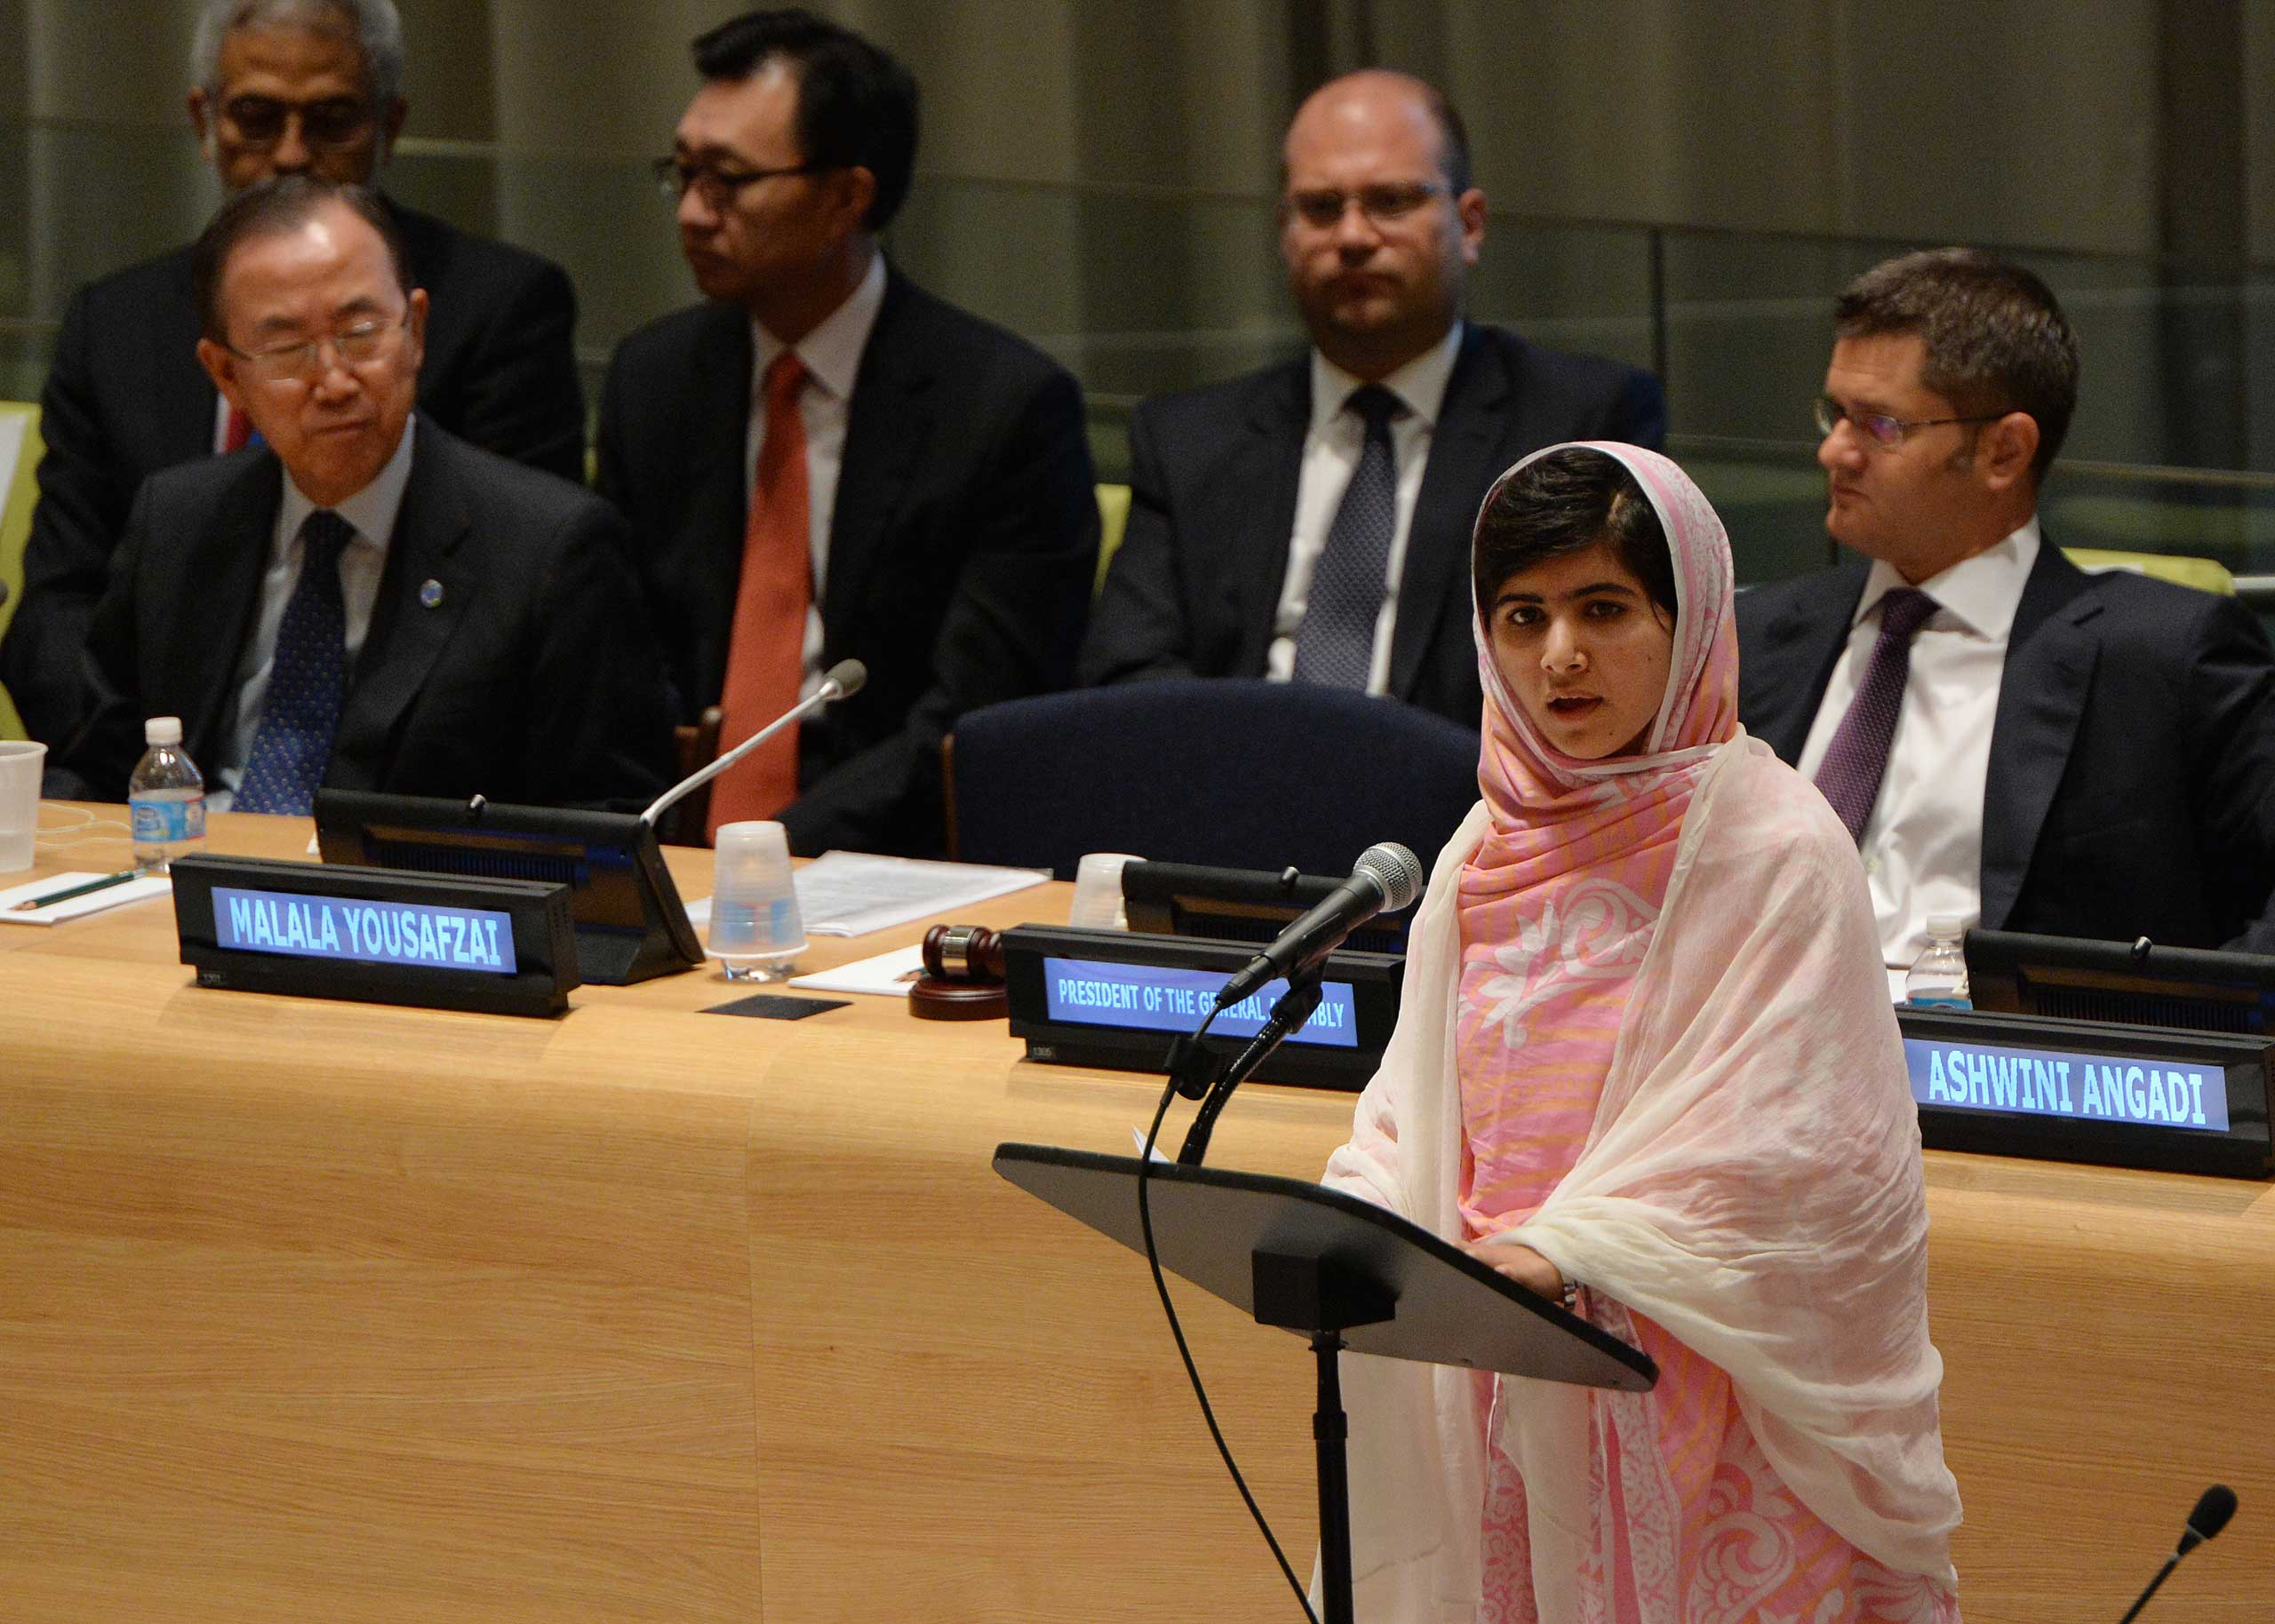 Pakistani student Malala Yousafzai speaks before the United Nations Youth Assembly in New york on July 12, 2013.